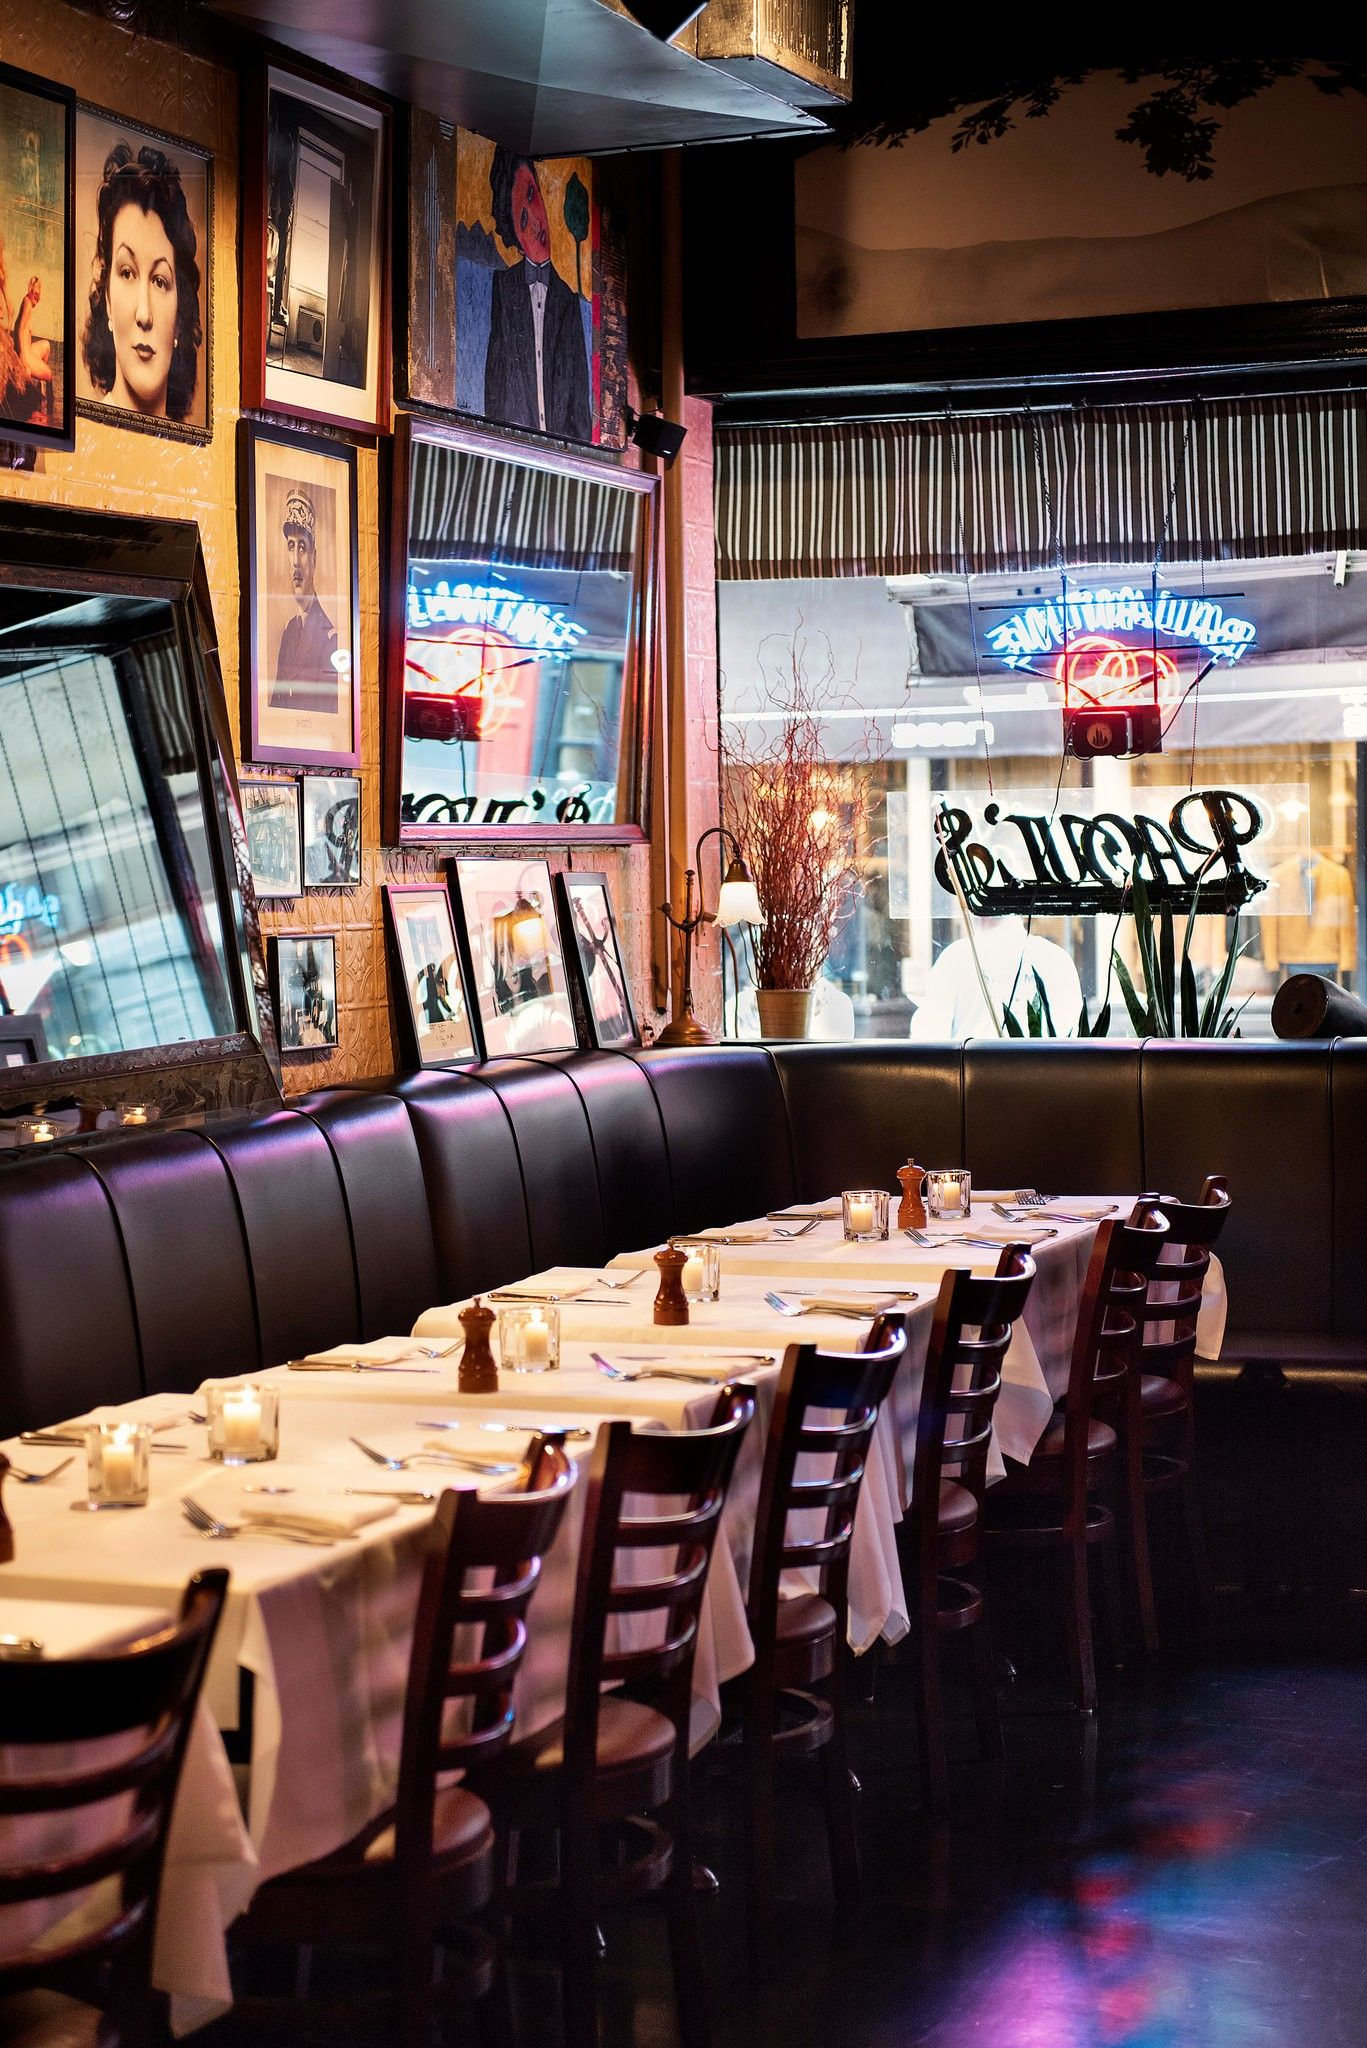 The New York Restaurant Where (Almost) Nothing Has Changed